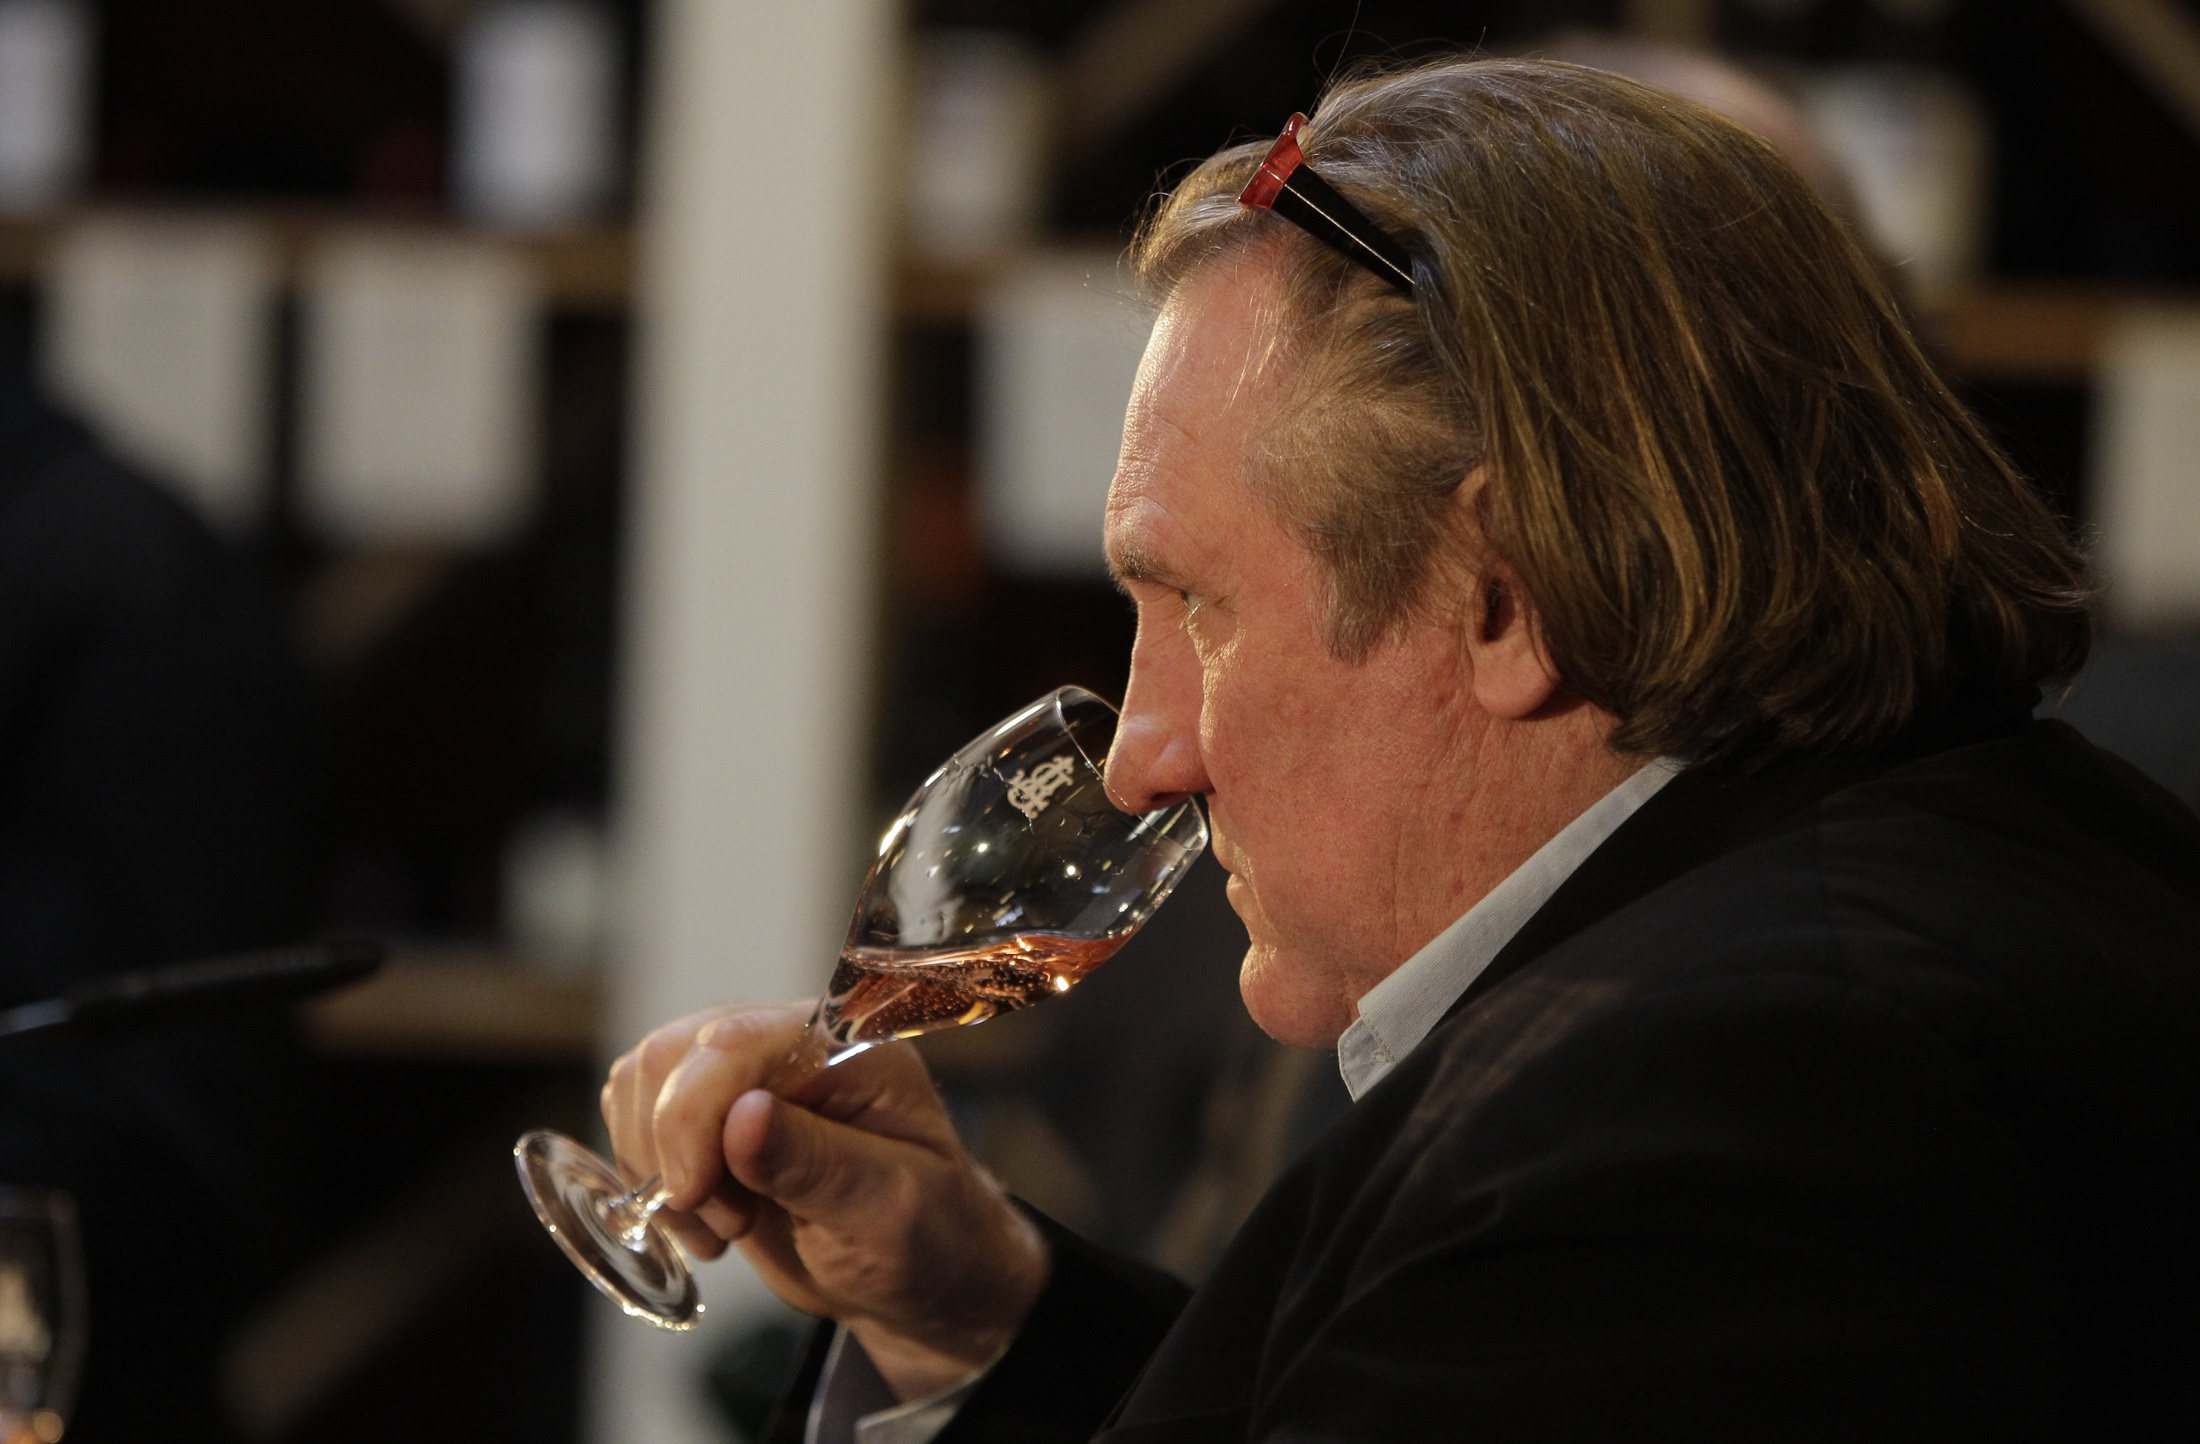 French actor Depardieu tastes his sparkling wine edition in Berlin